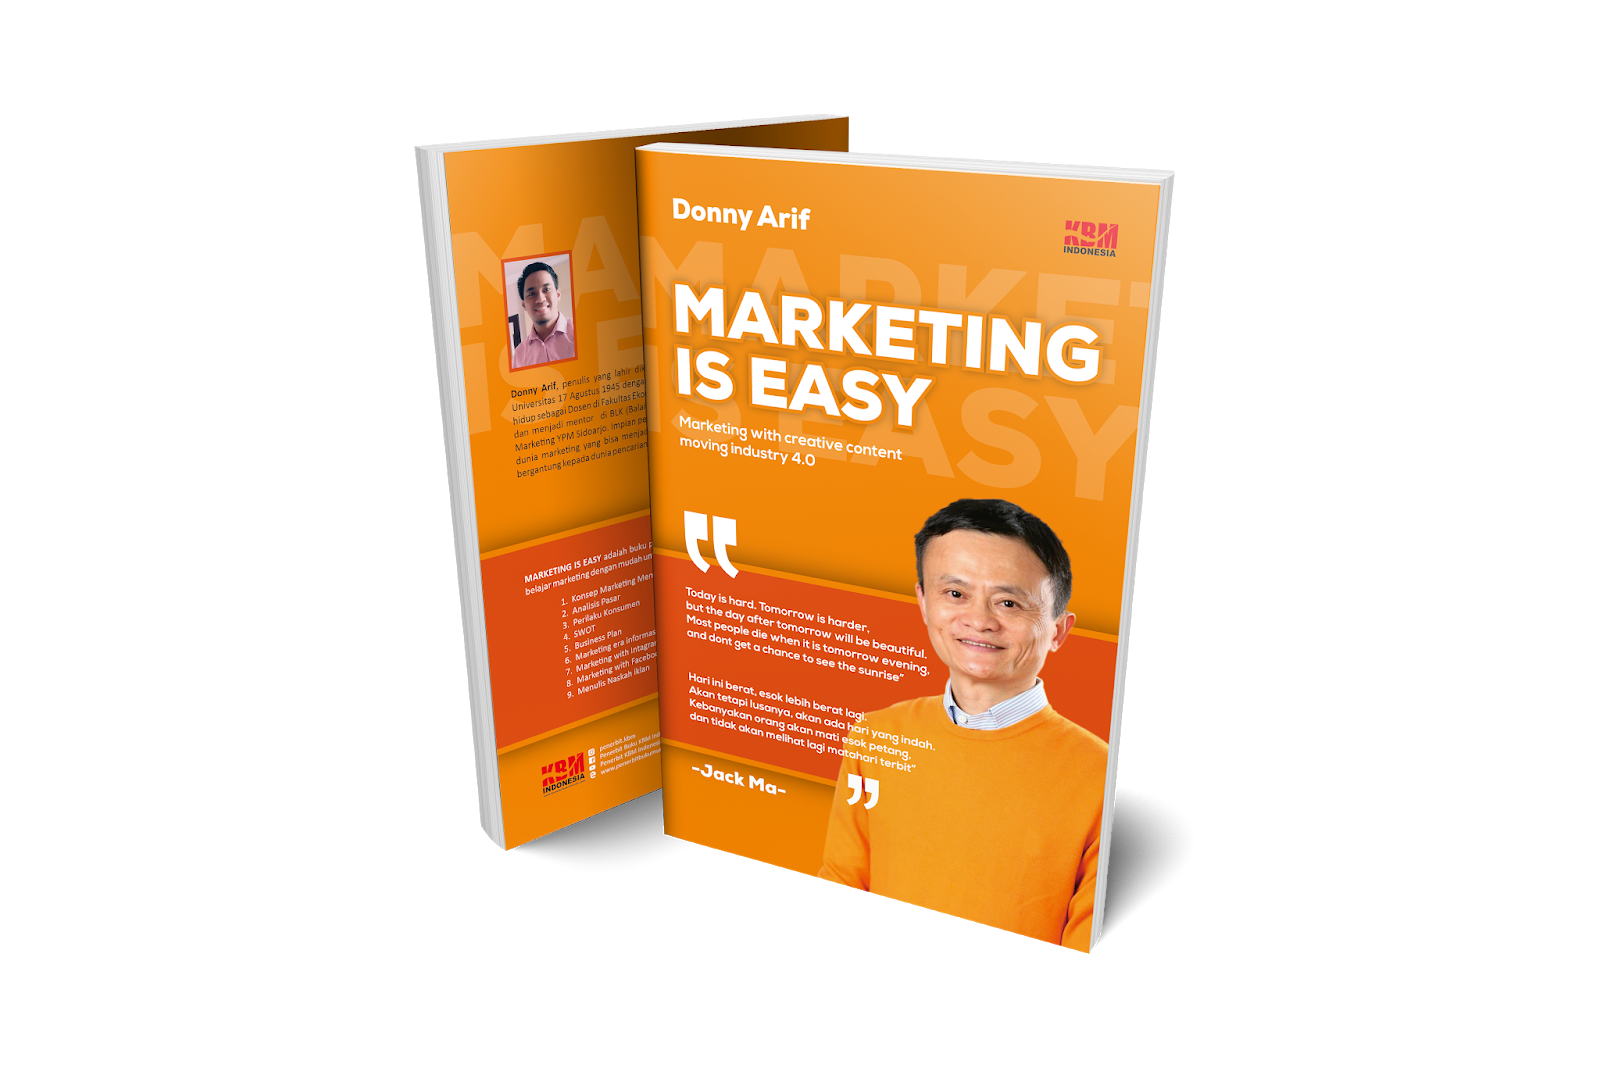 MARKETING IS EASY (Marketing With Creative Content Moving Industry 4.0)